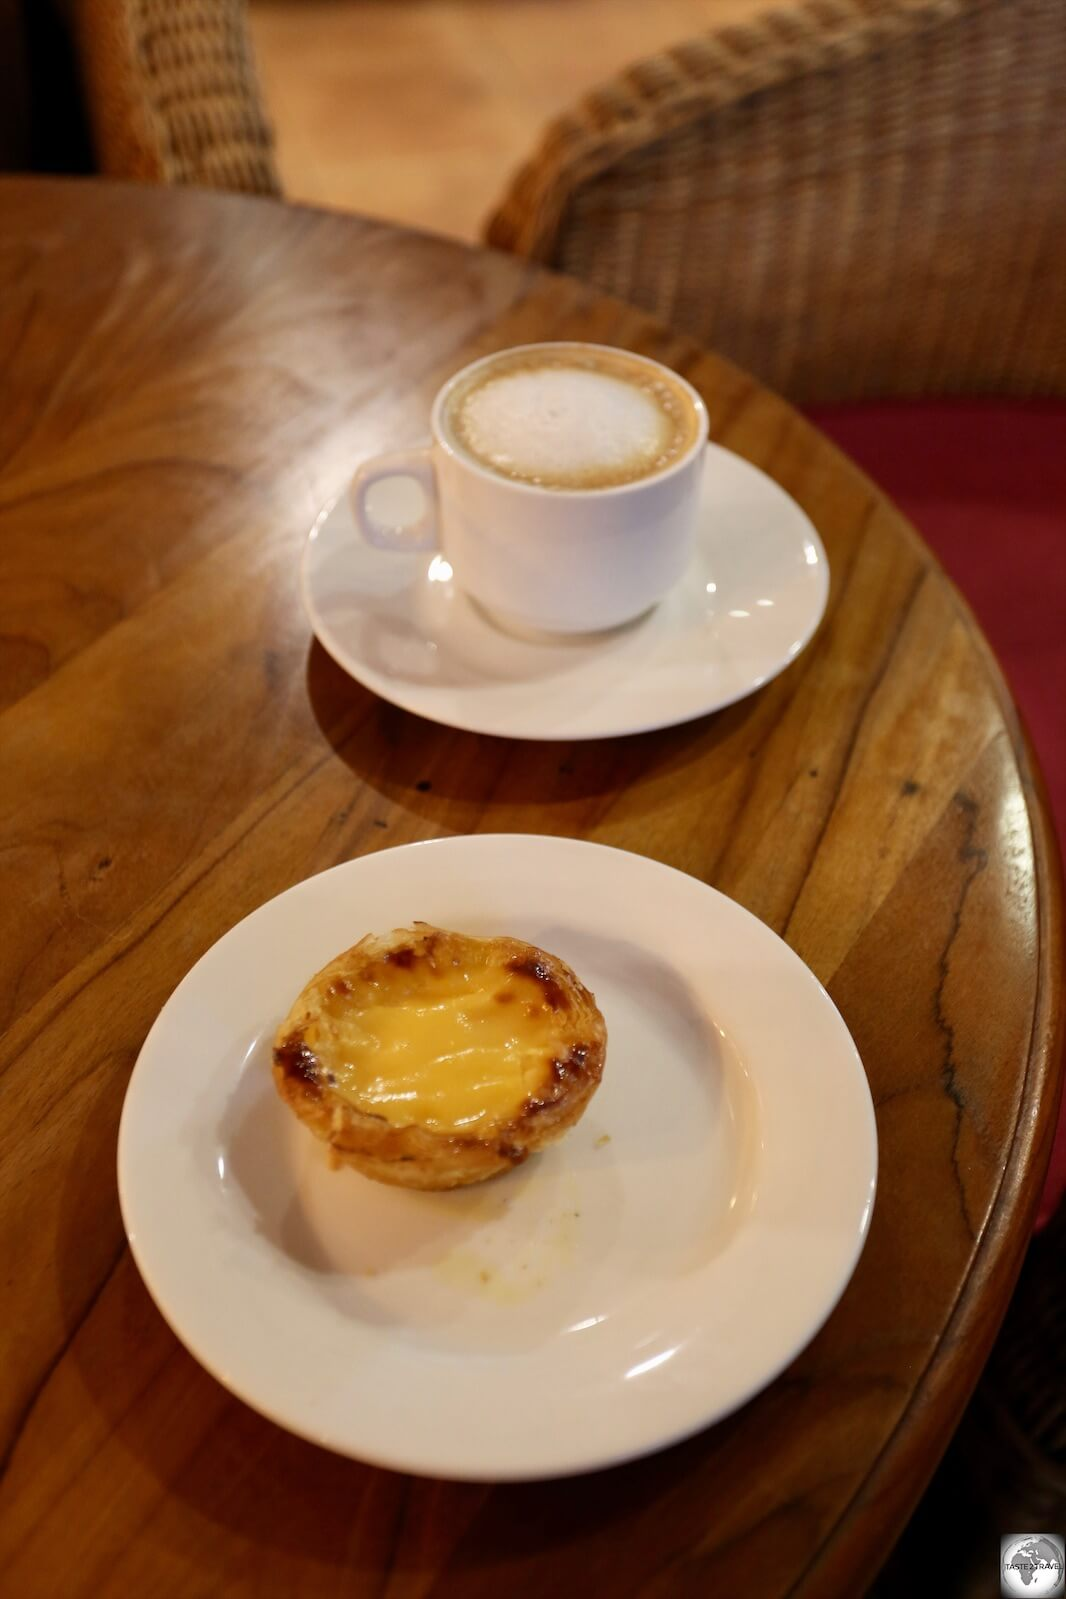 A very fine Portuguese egg tart, served at the Hotel Timor cafe.